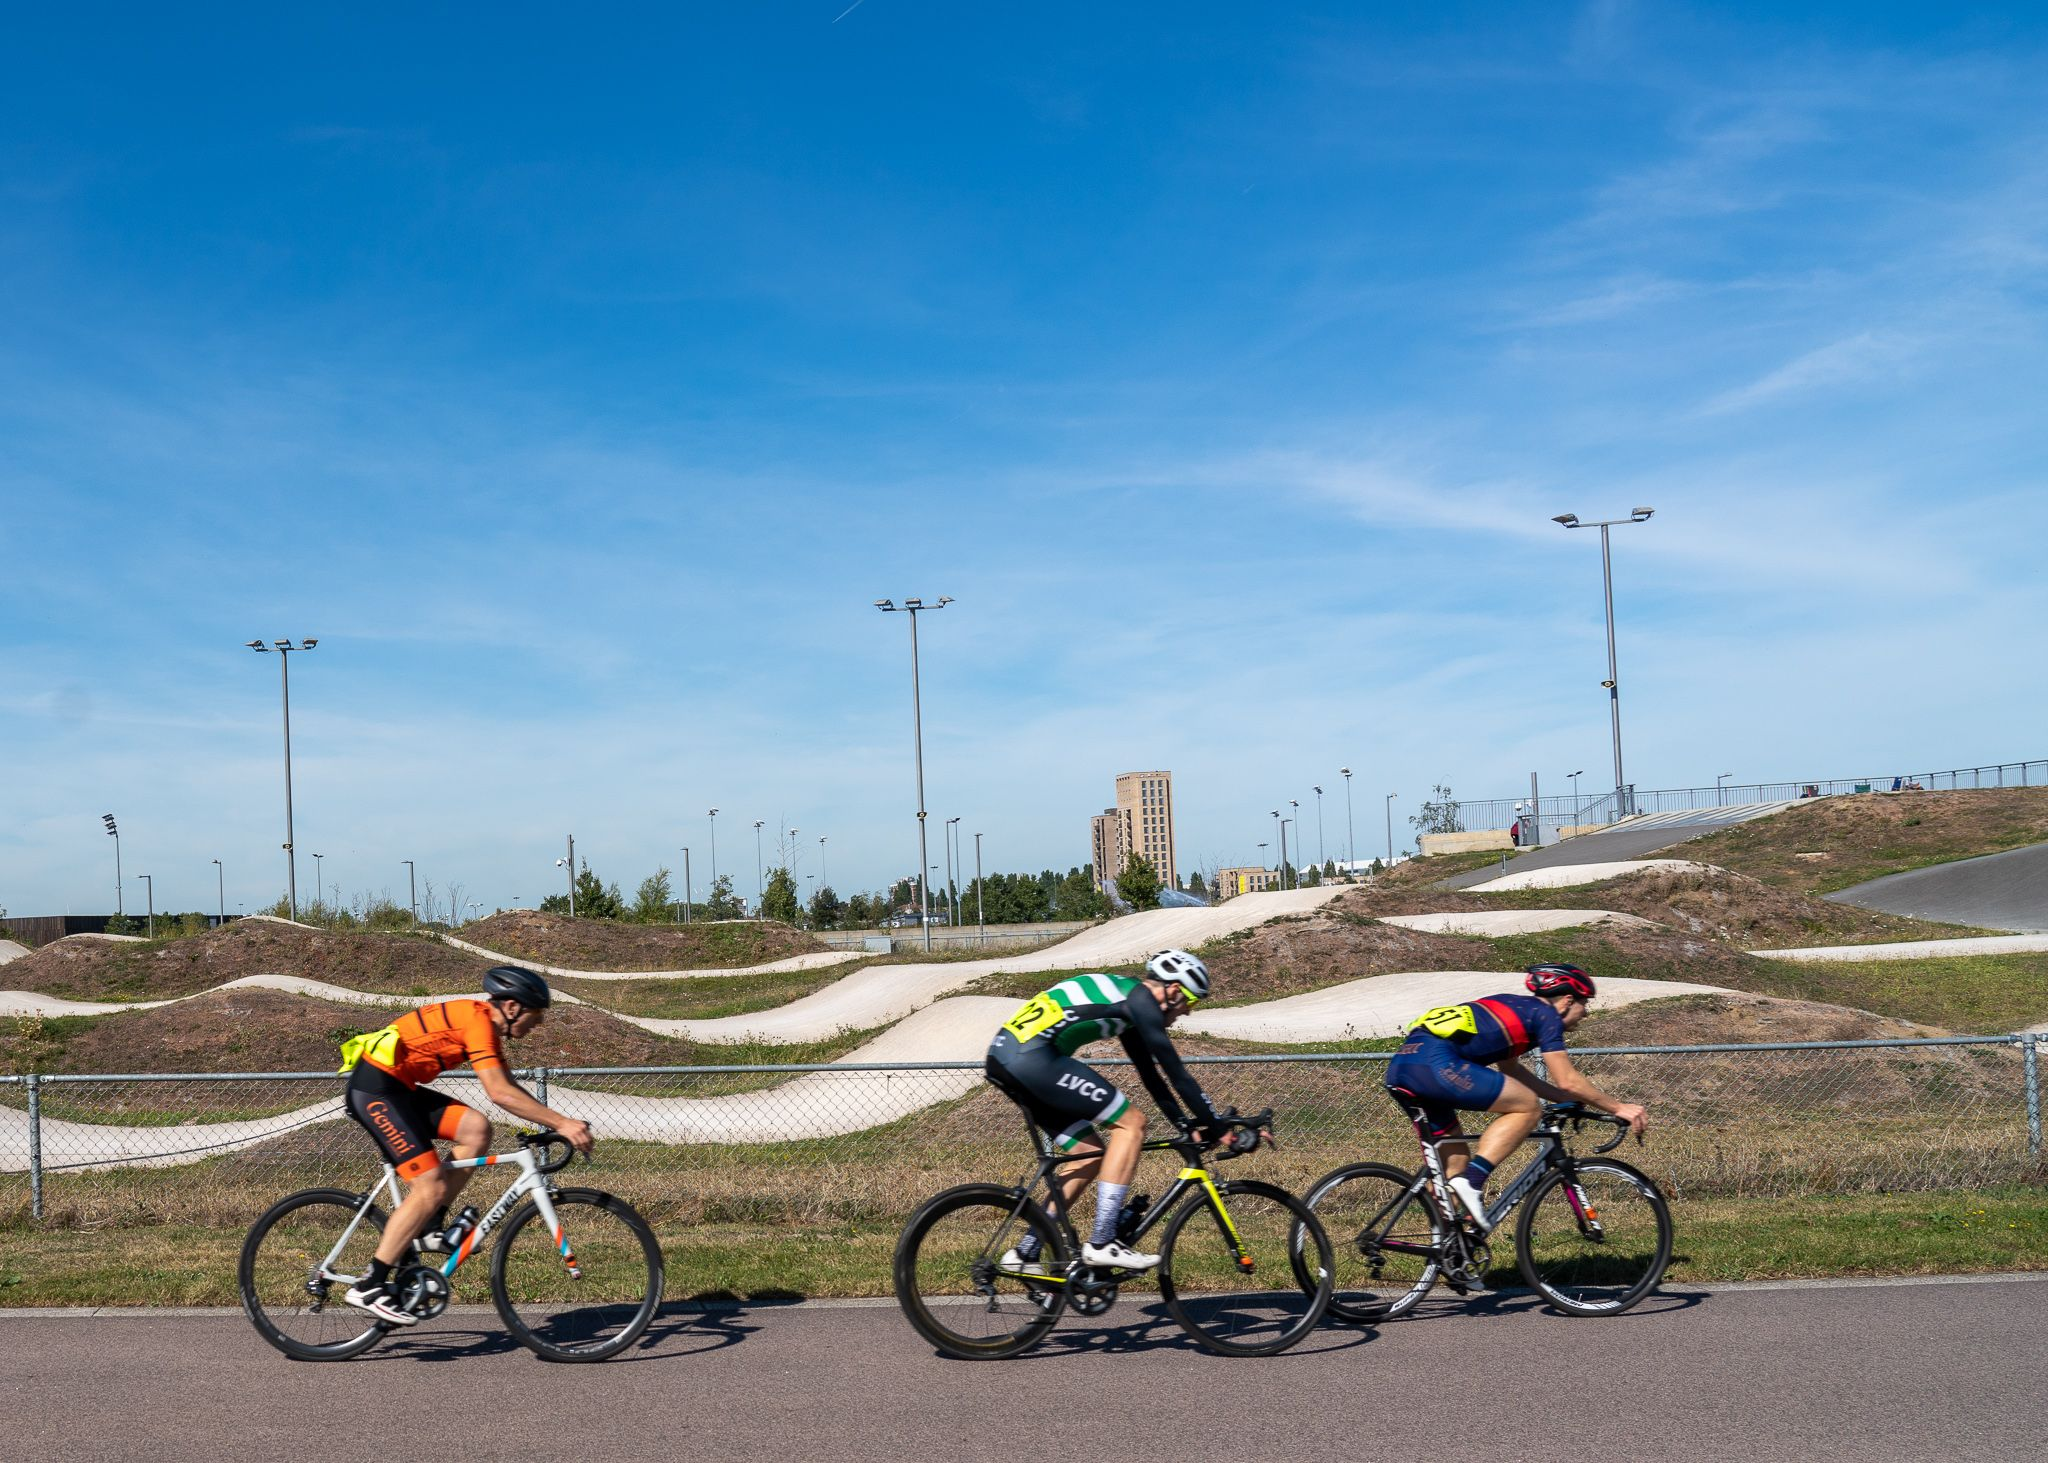 Velodrome, cyclists in action, Olympic Park